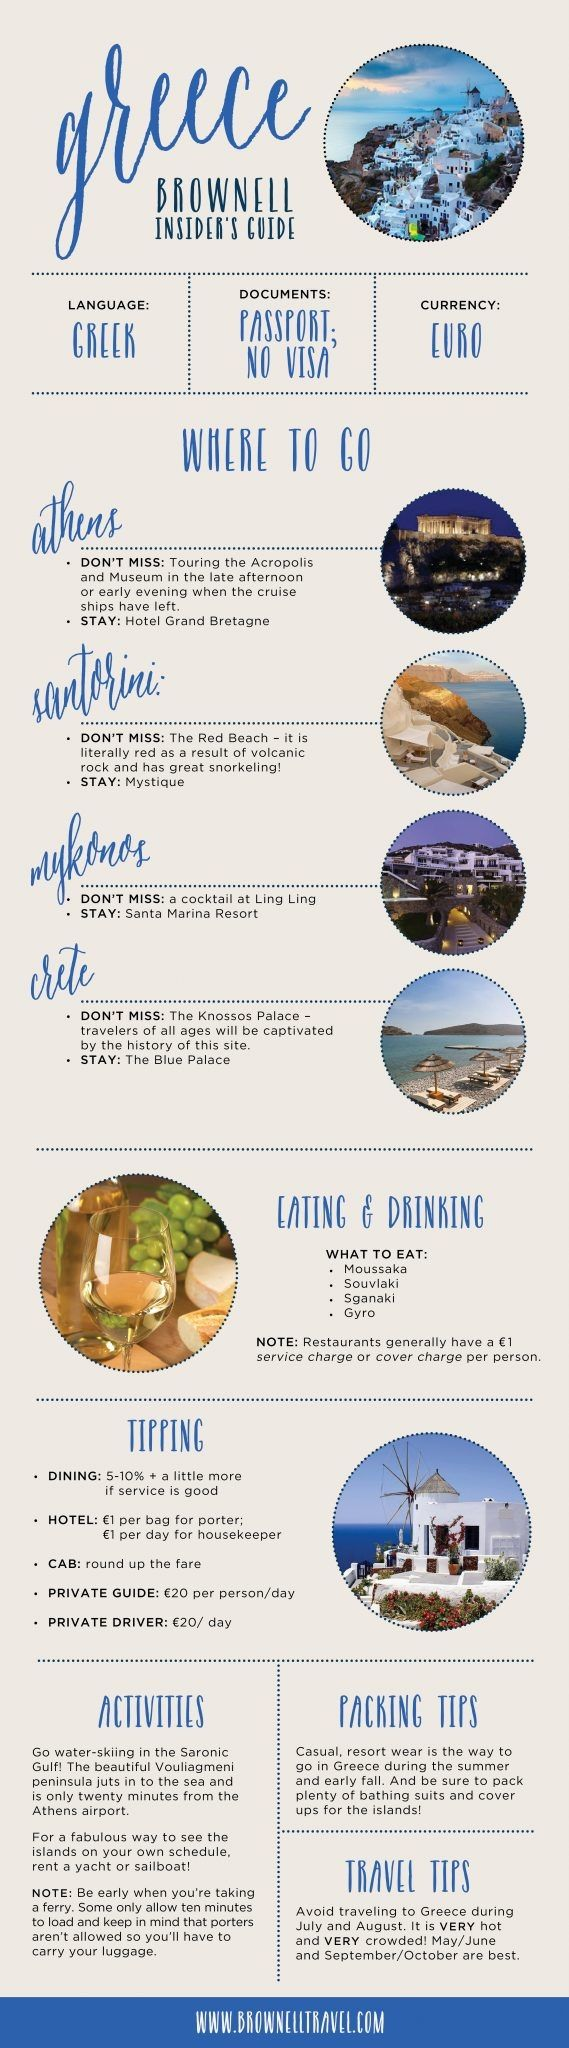 Greece Brownell Insider's Guide #Infographics